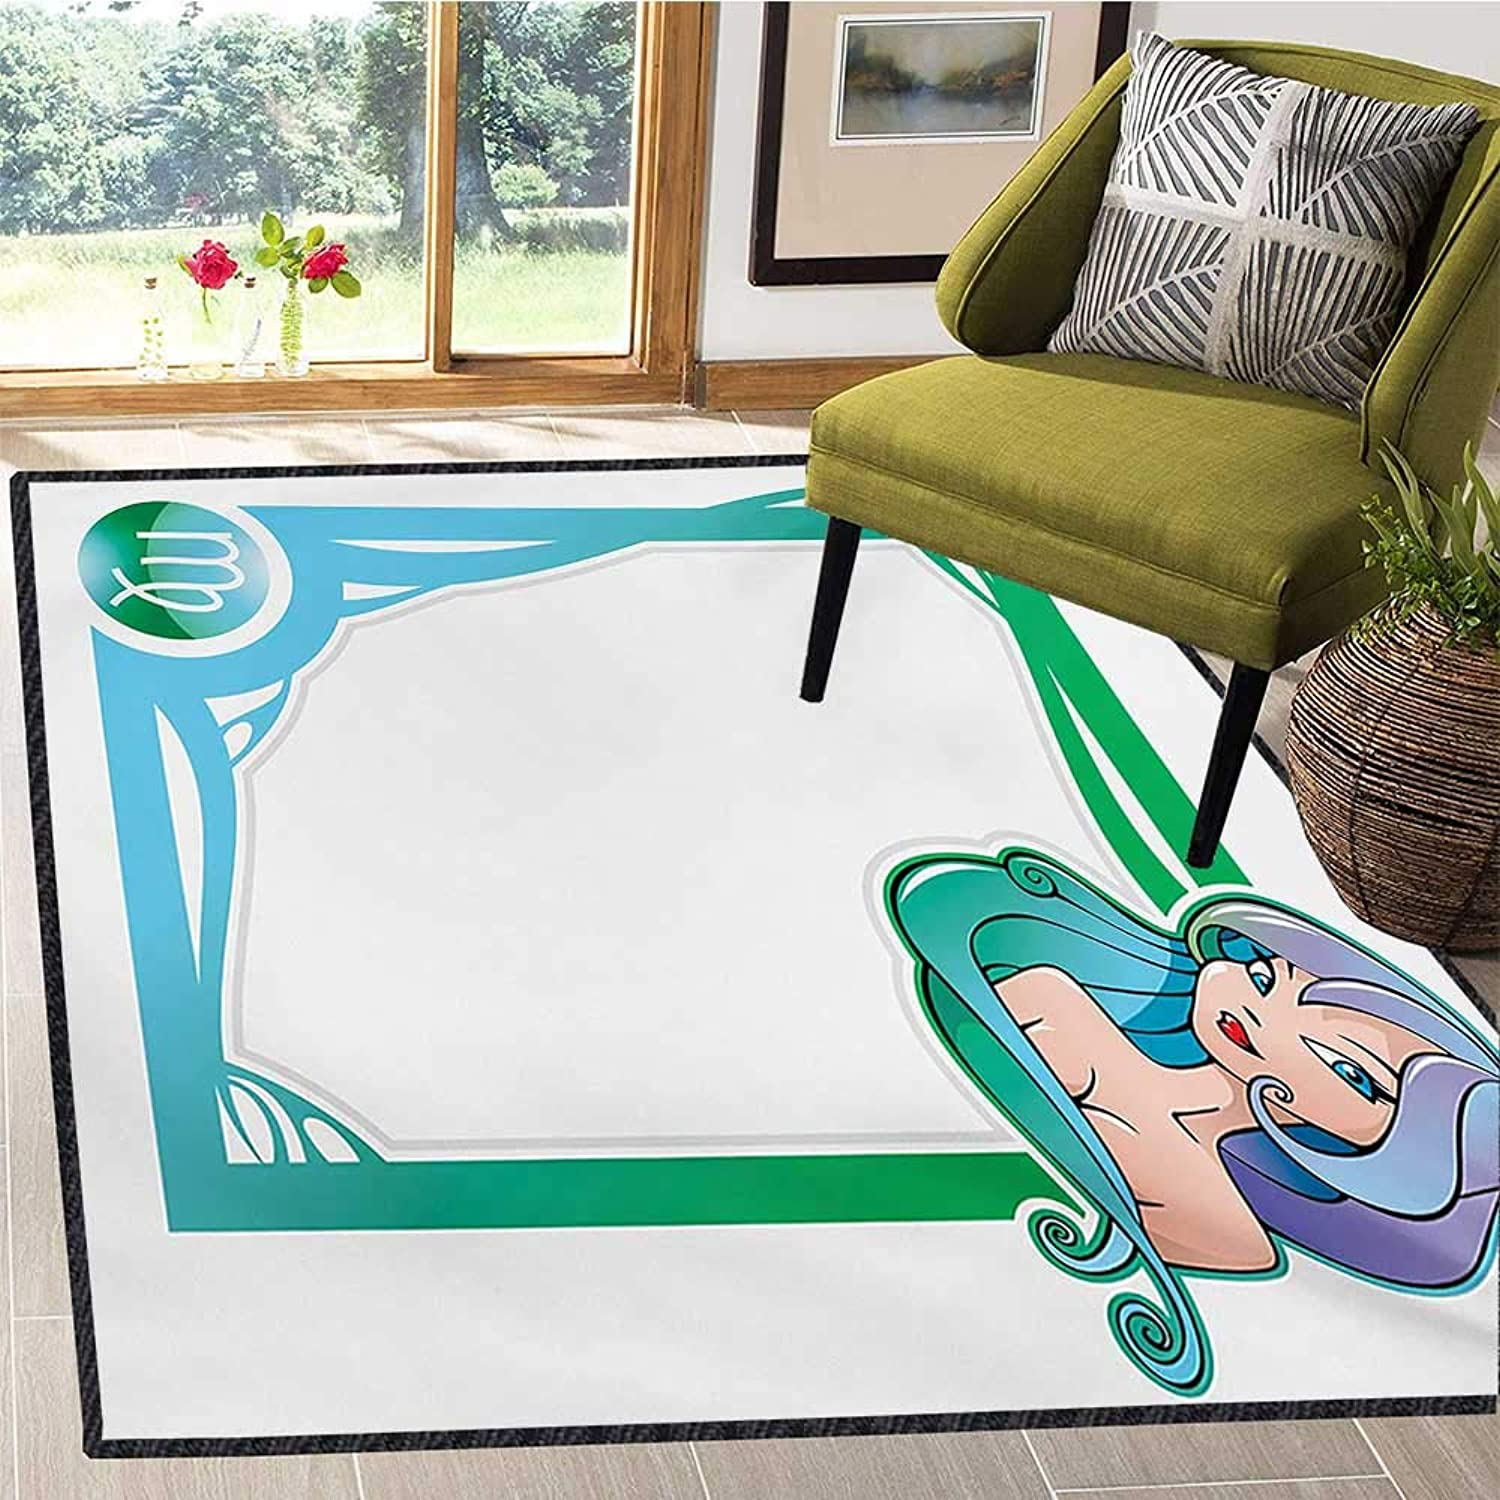 Zodiac Virgo, Door Mats for Inside, The Sixth Sign from The Series of Zodiac Frames in Cartoon Style with a Girl, Door Mat Outside 4x6 Ft Multicolor